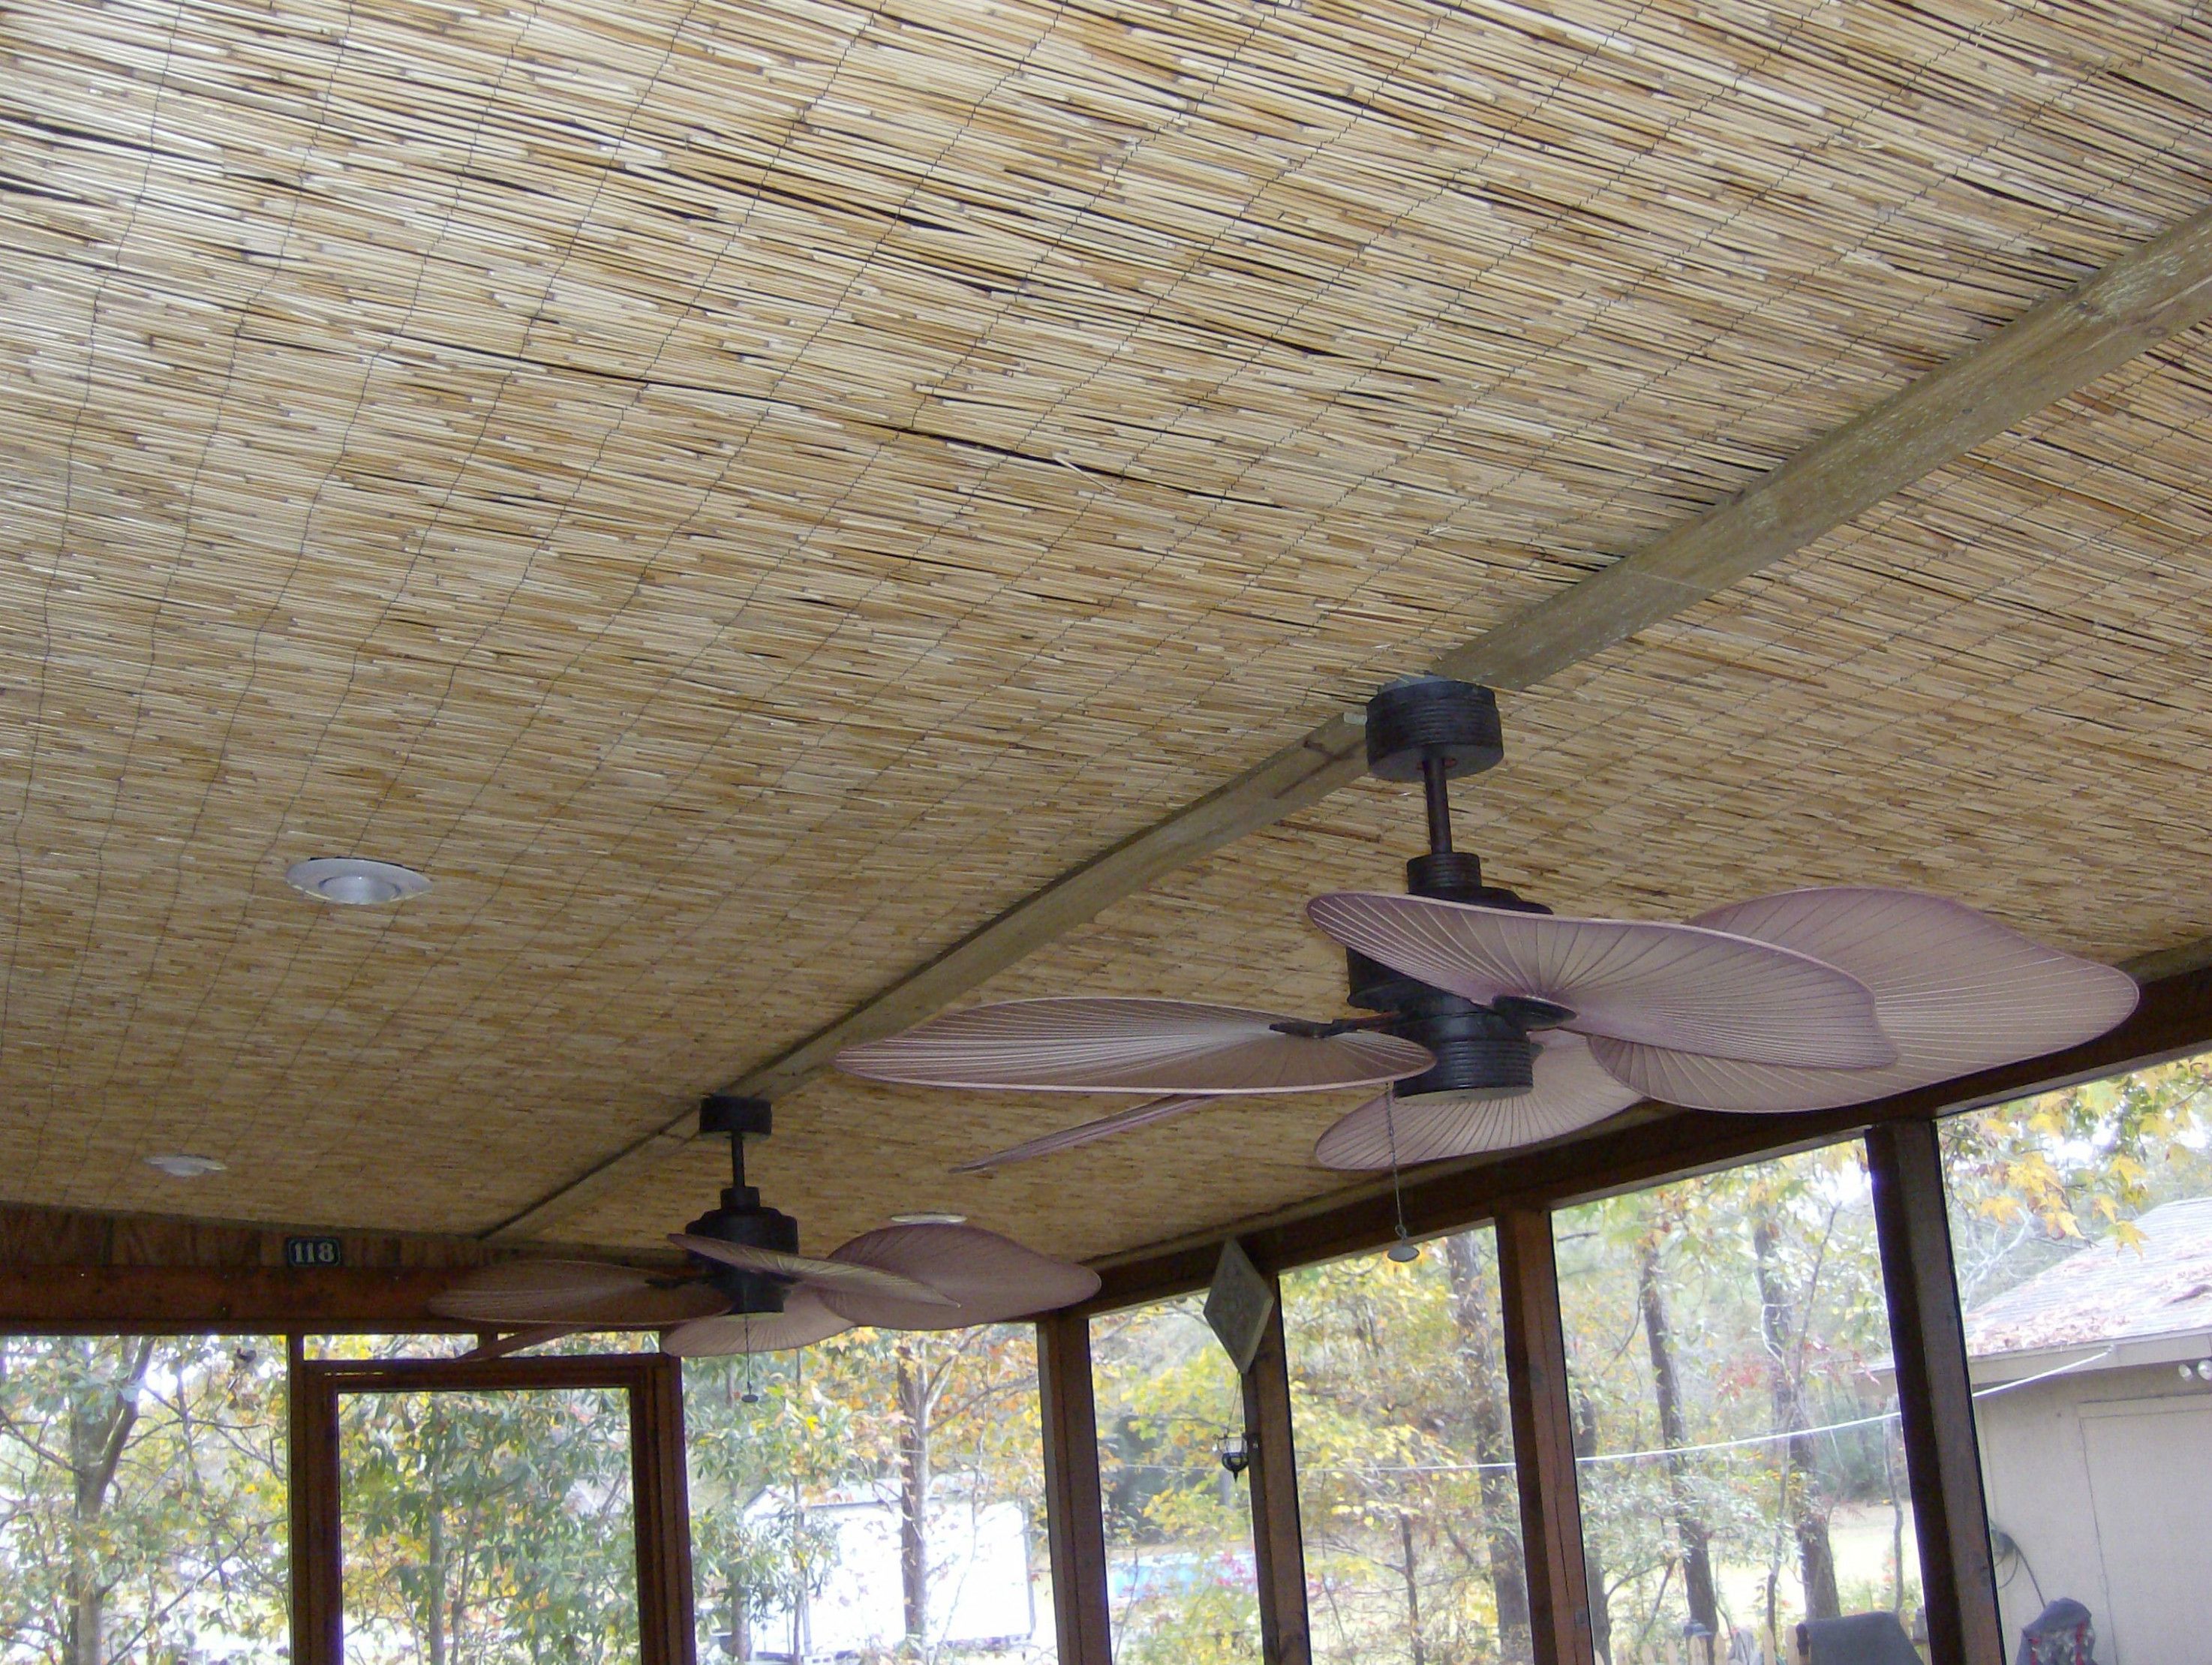 Looking For Cheap Ideas To Finish A Garage Ceiling For My ..